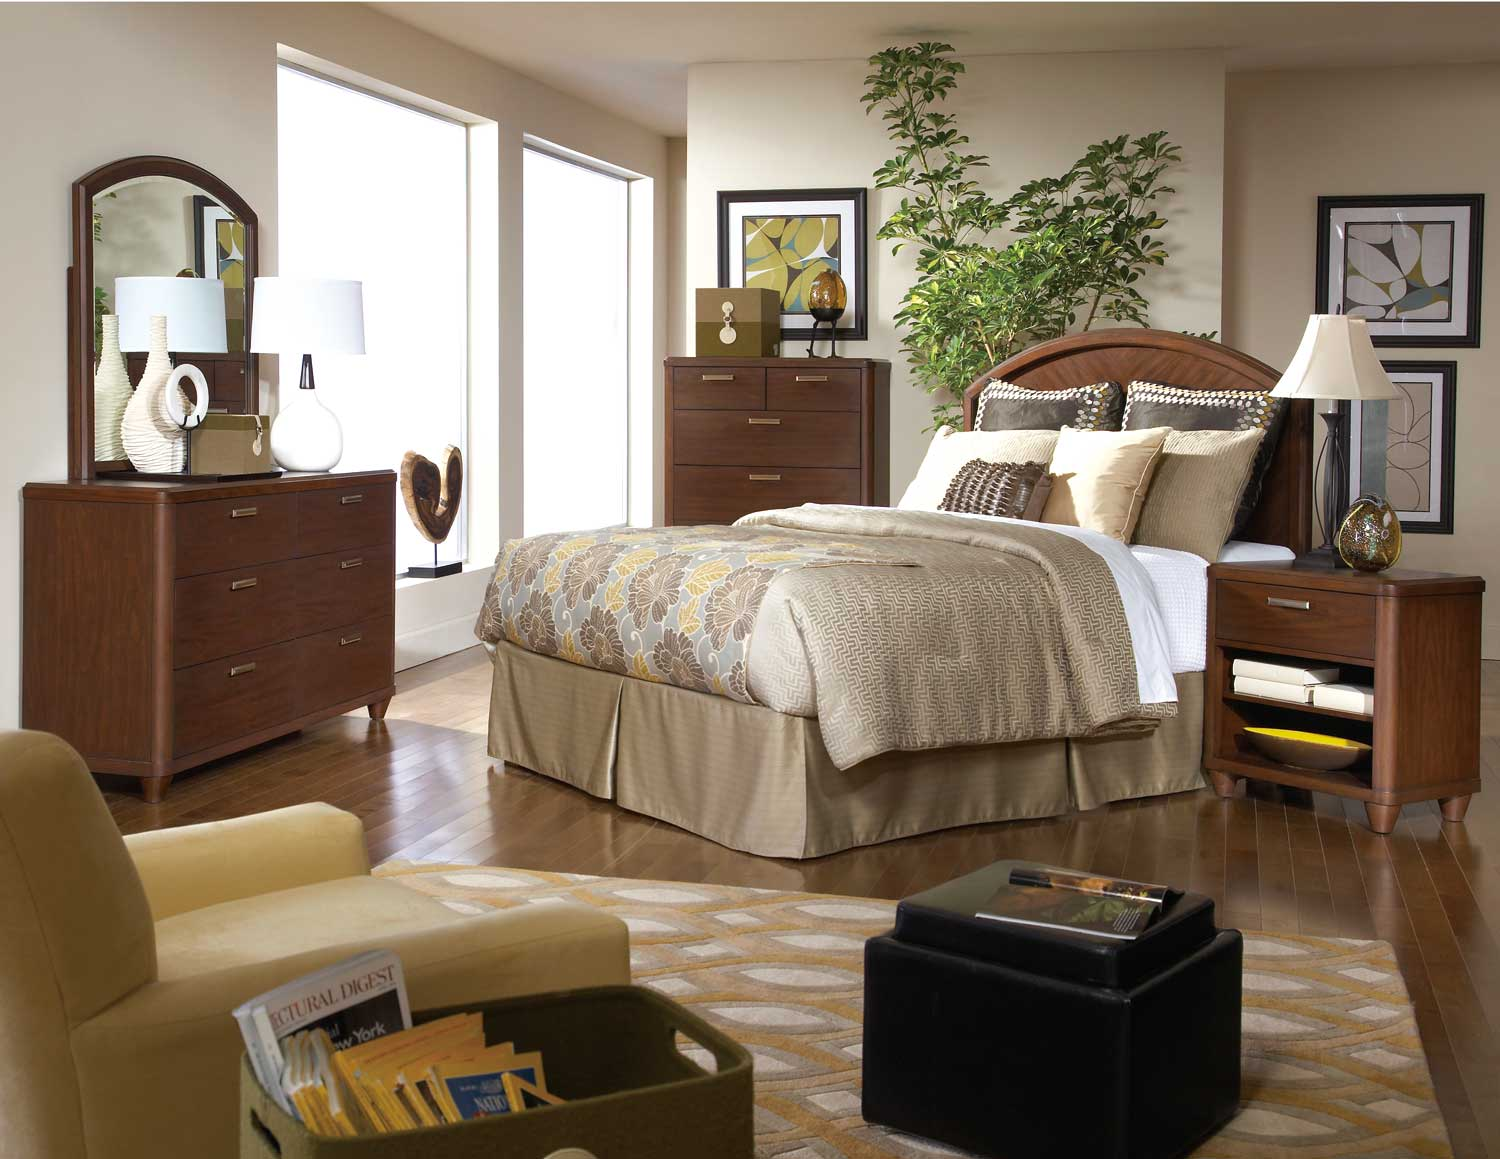 Homelegance Beaumont Bedroom Set - Brown Cherry